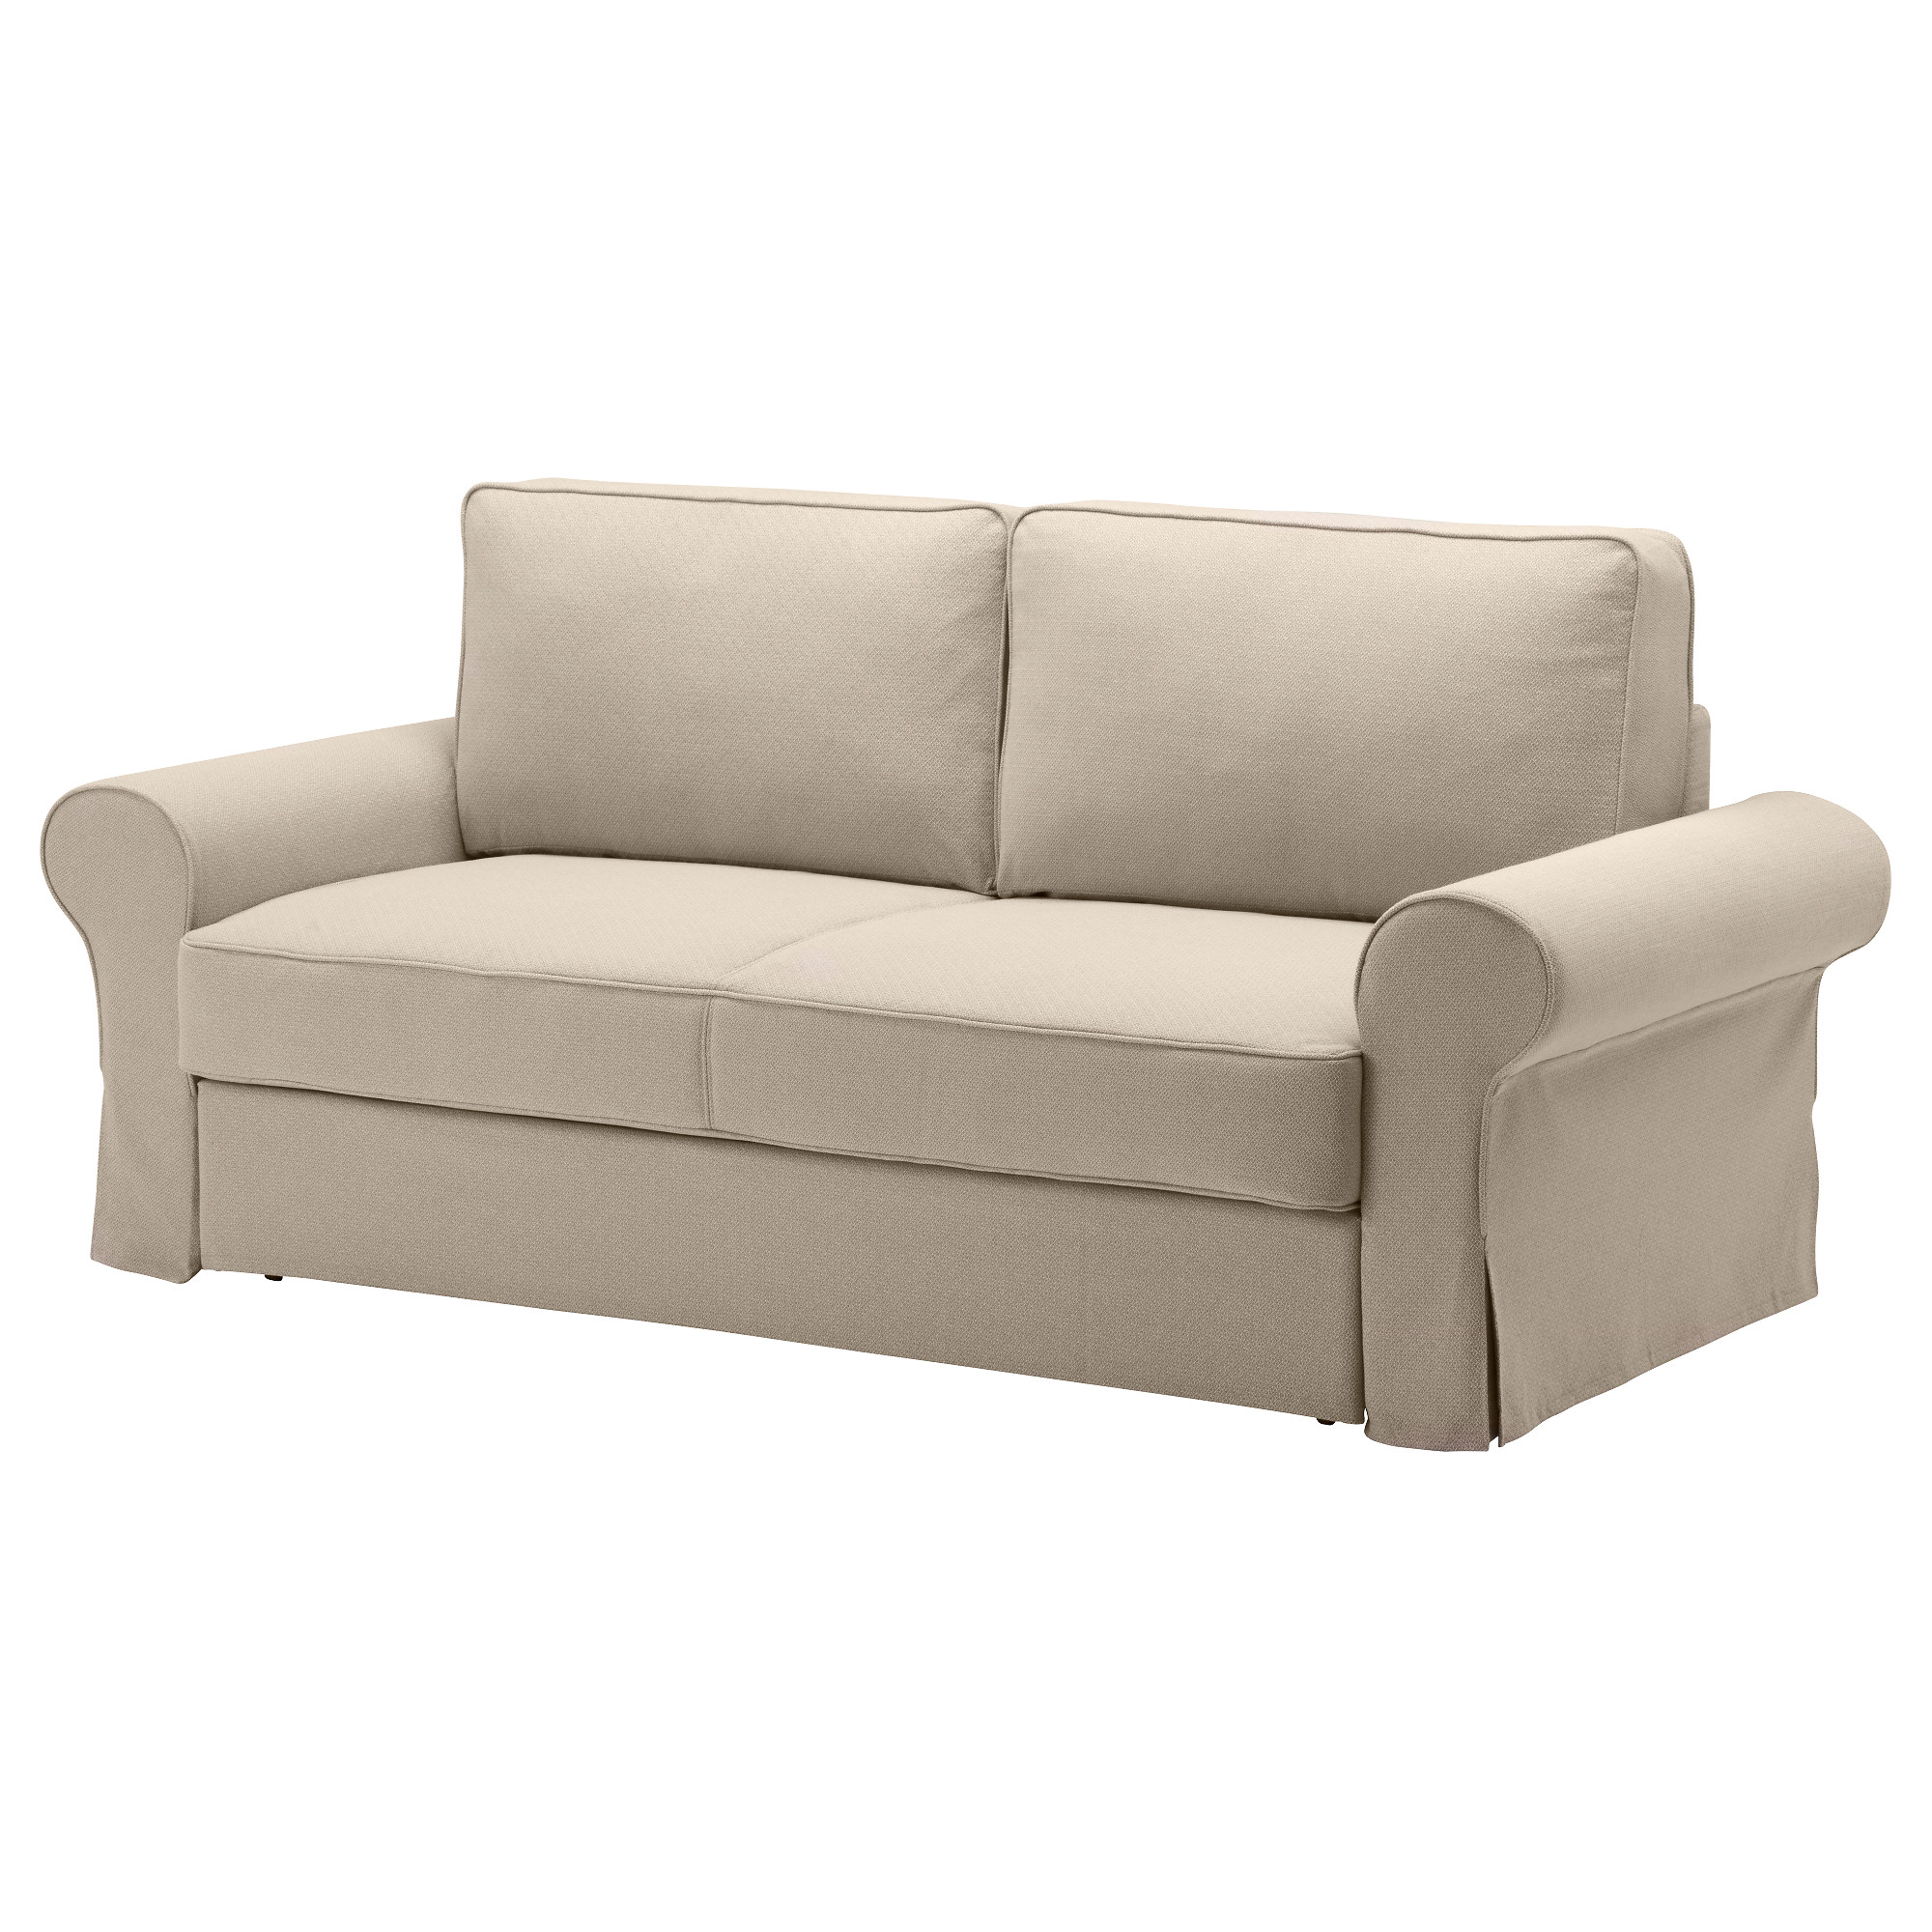 Canap convertible ikea my blog - Canape convertible couchage quotidien ikea ...